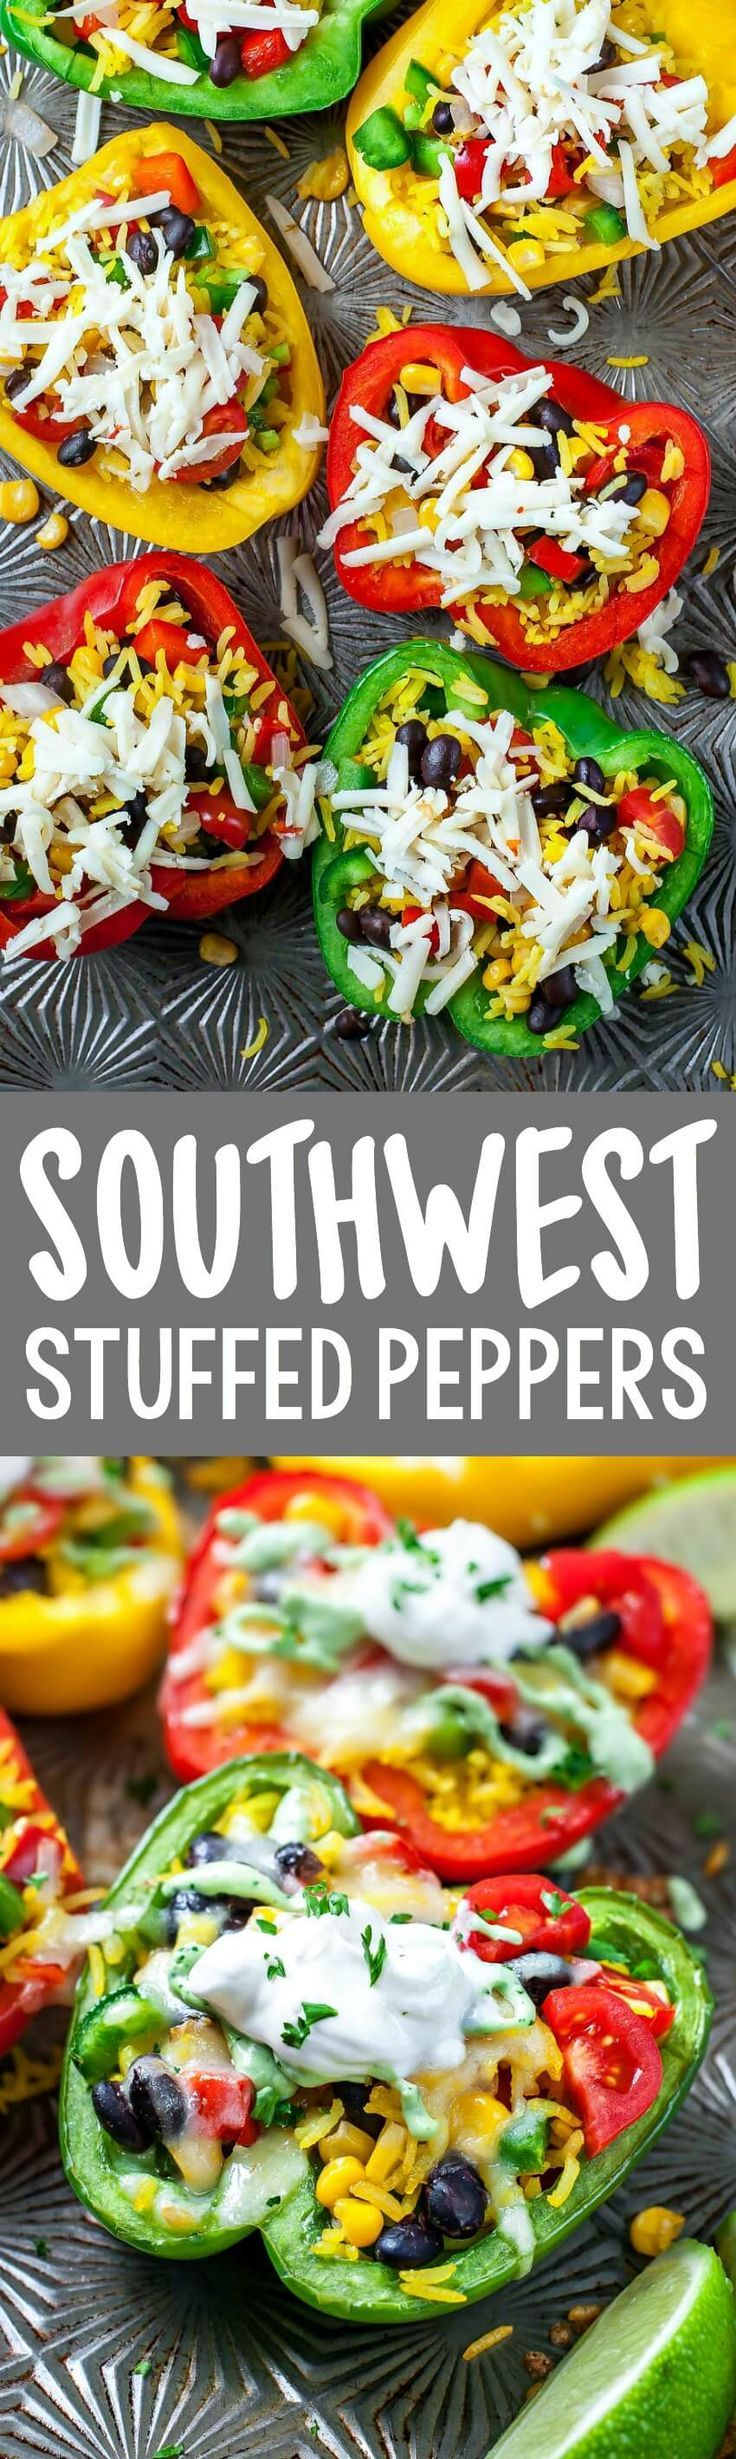 Cheesy Southwest Stuffed Peppers with Cilantro Avocado Sauce! vegetarian + gluten-free